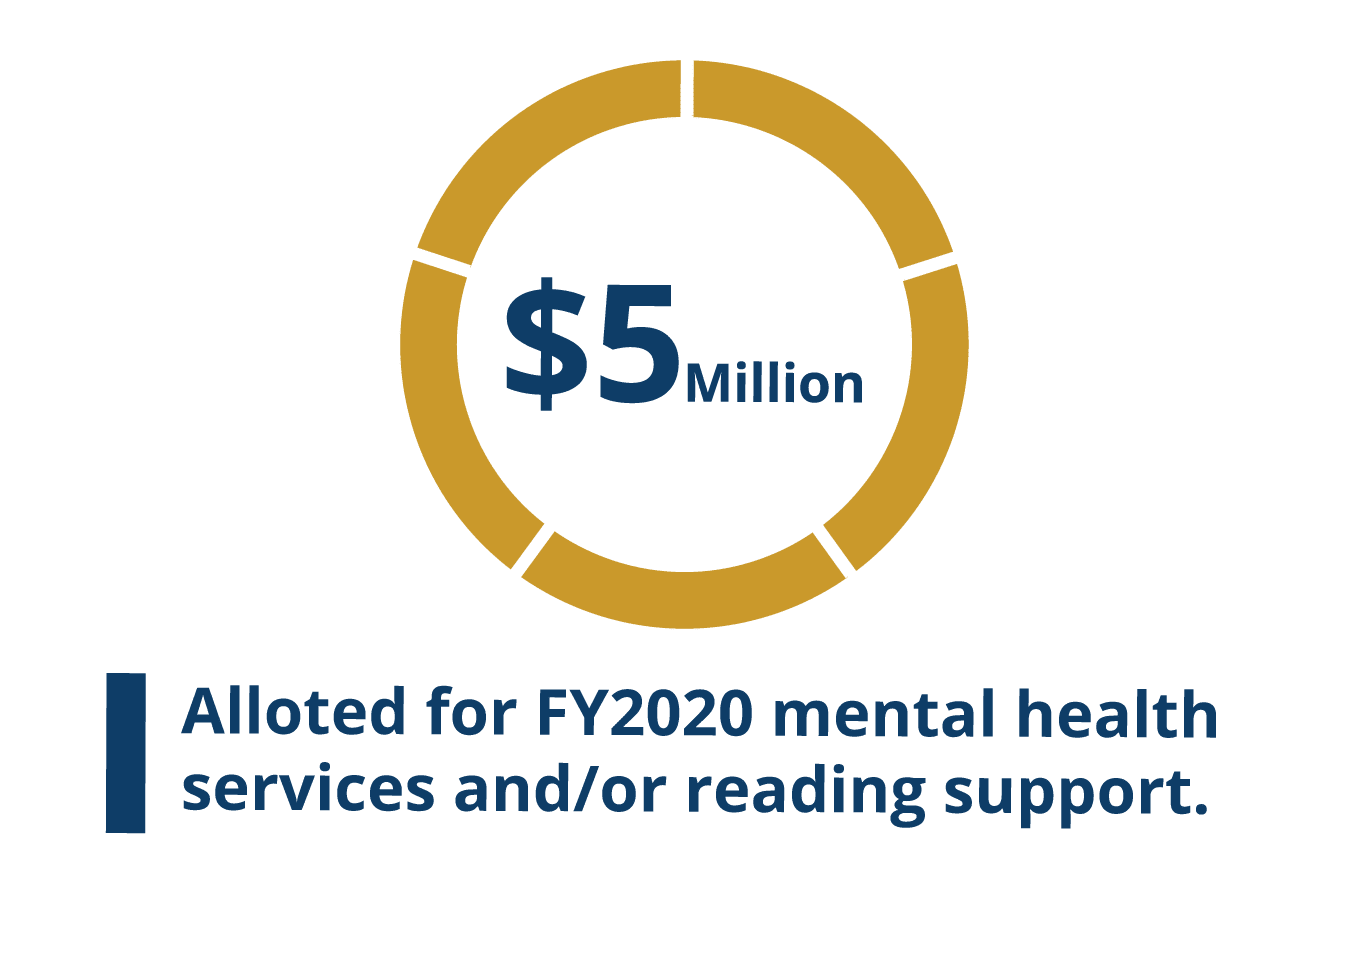 Graphic representing that there is $5 million alloted for FY2020 mental health services and/or reading support